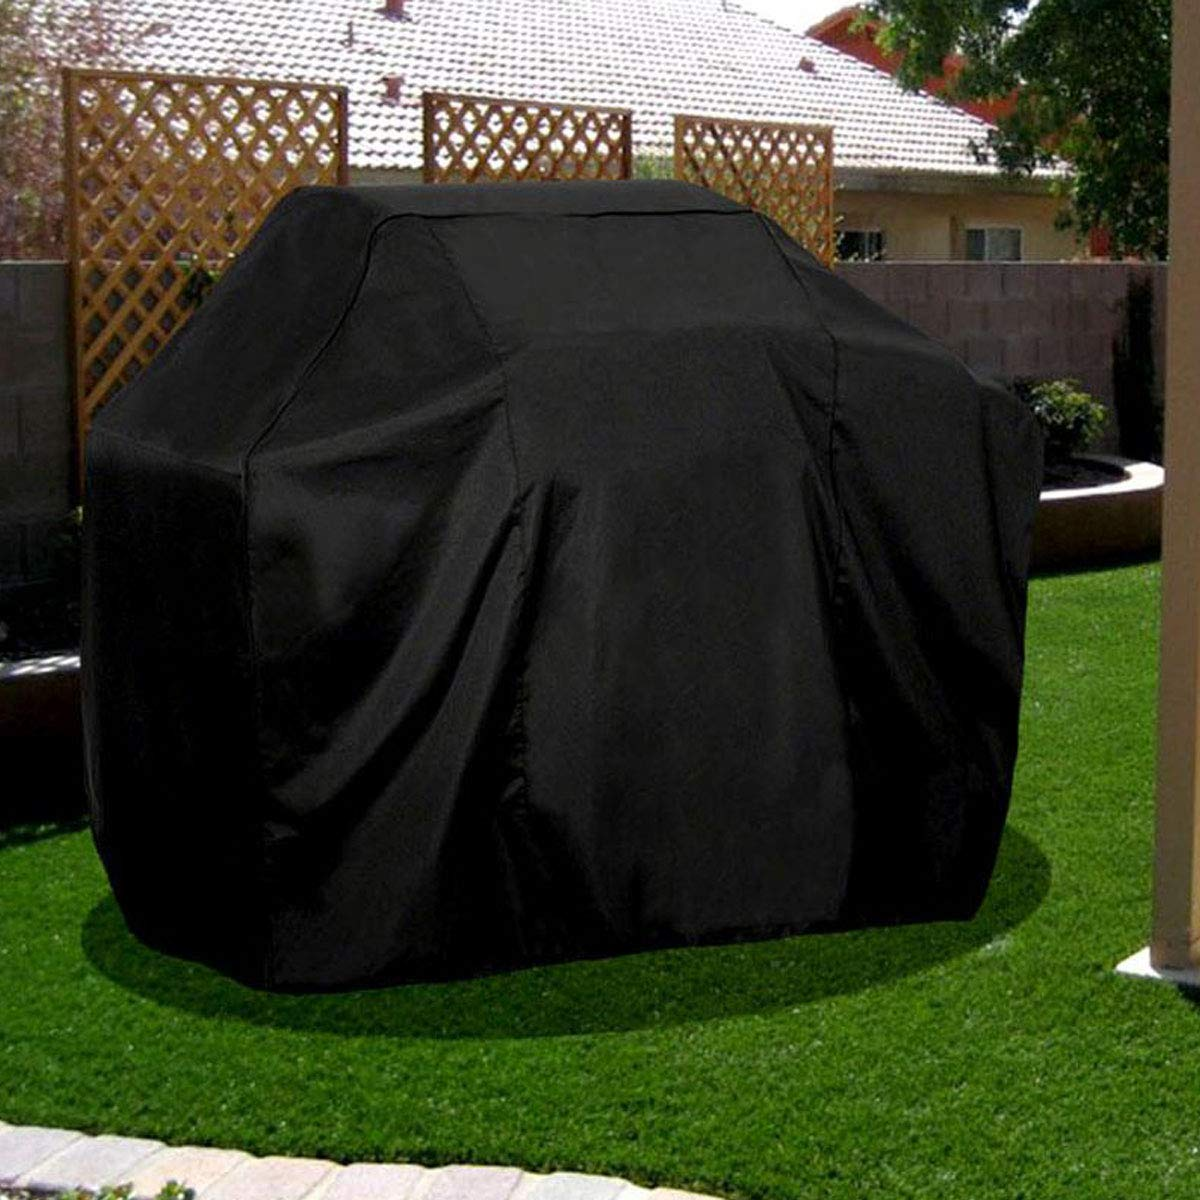 FiNeWaY@ HEAVY DUTY WATERPROOF ELASTIC FITTED BREATHABLE BBQ COVER BARBECUE GRILL PROTECTOR W ZIPS 120CM X 145CM X 70CM LARGE